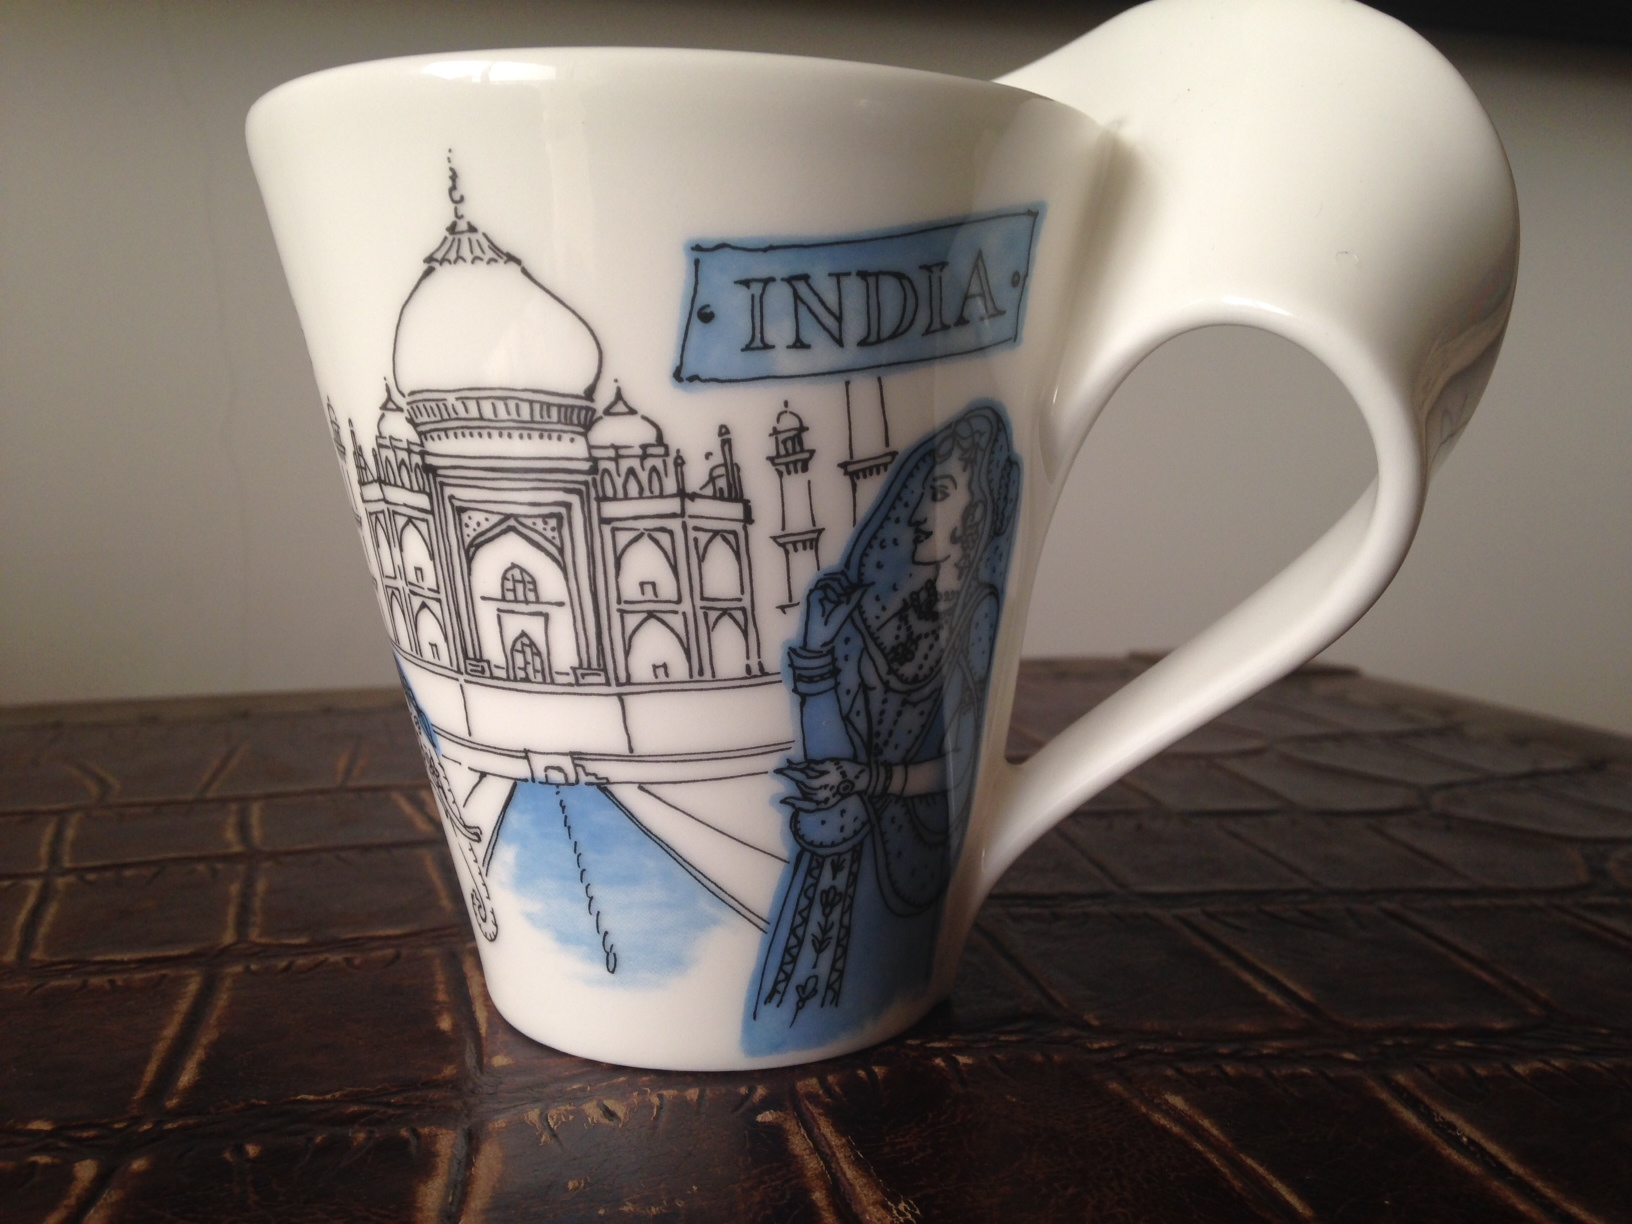 limited-edition-india-villeroy-boch-mug-02.JPG